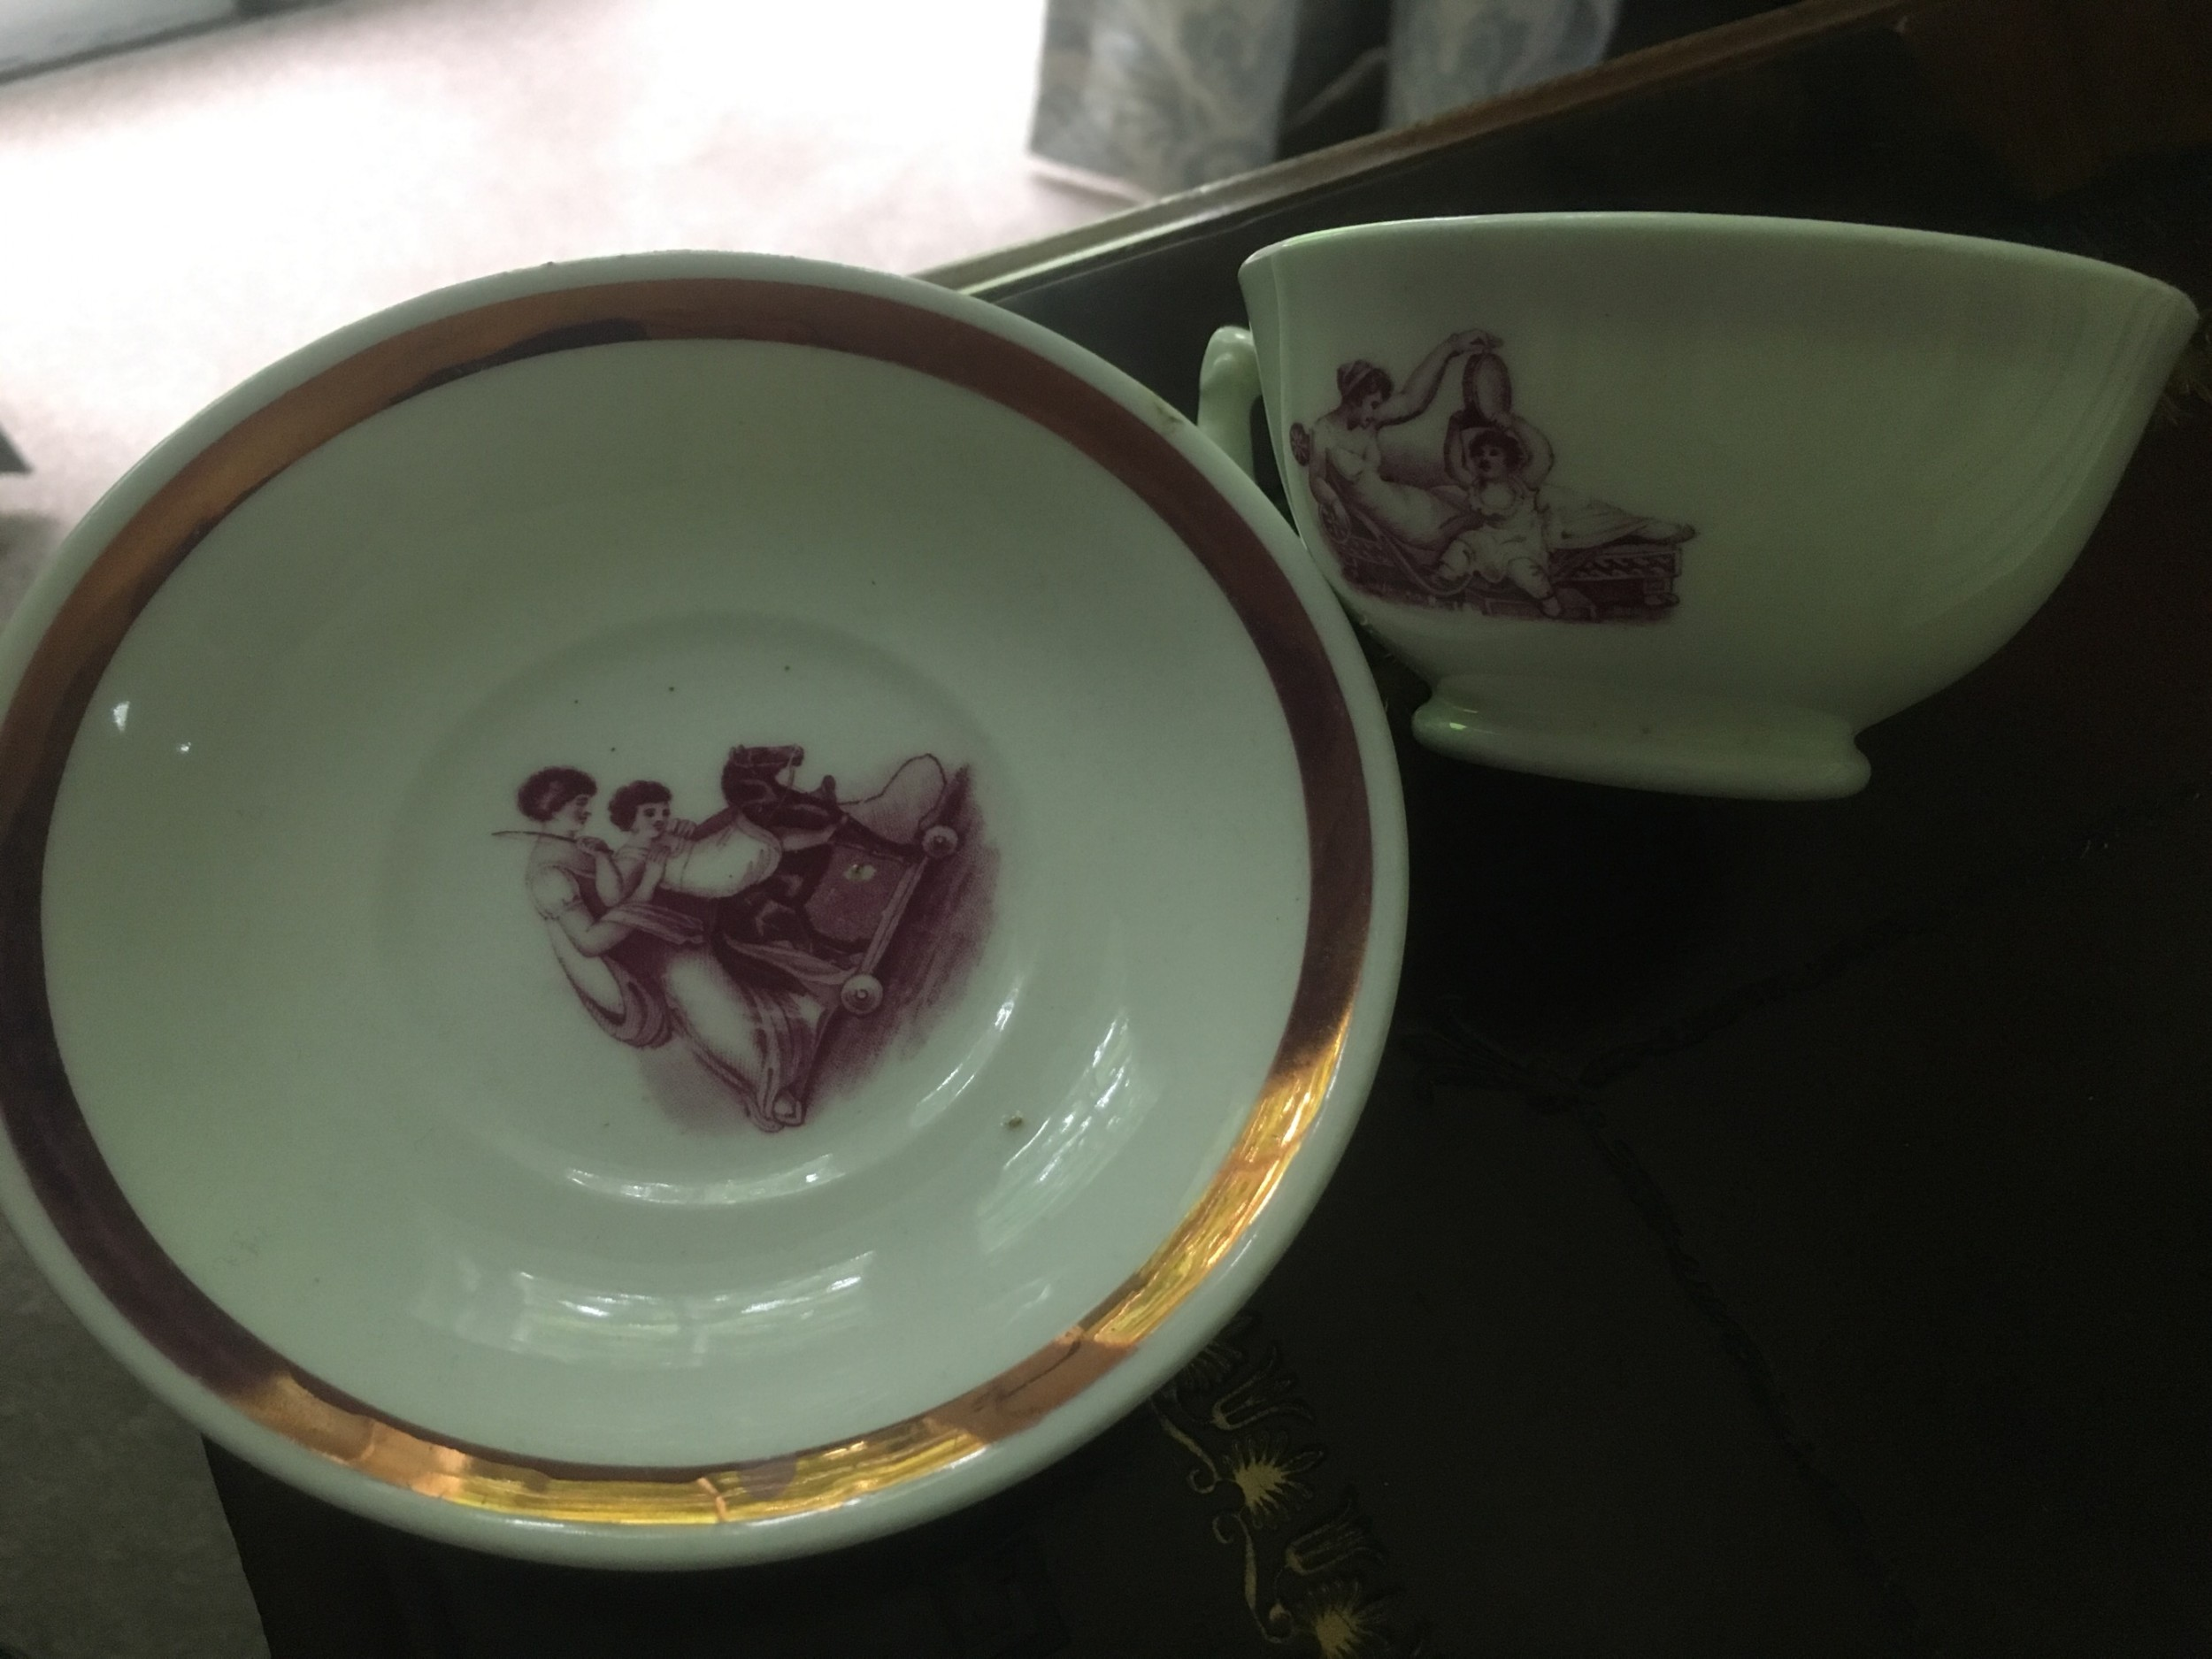 sunderland lustre ware cup and saucer